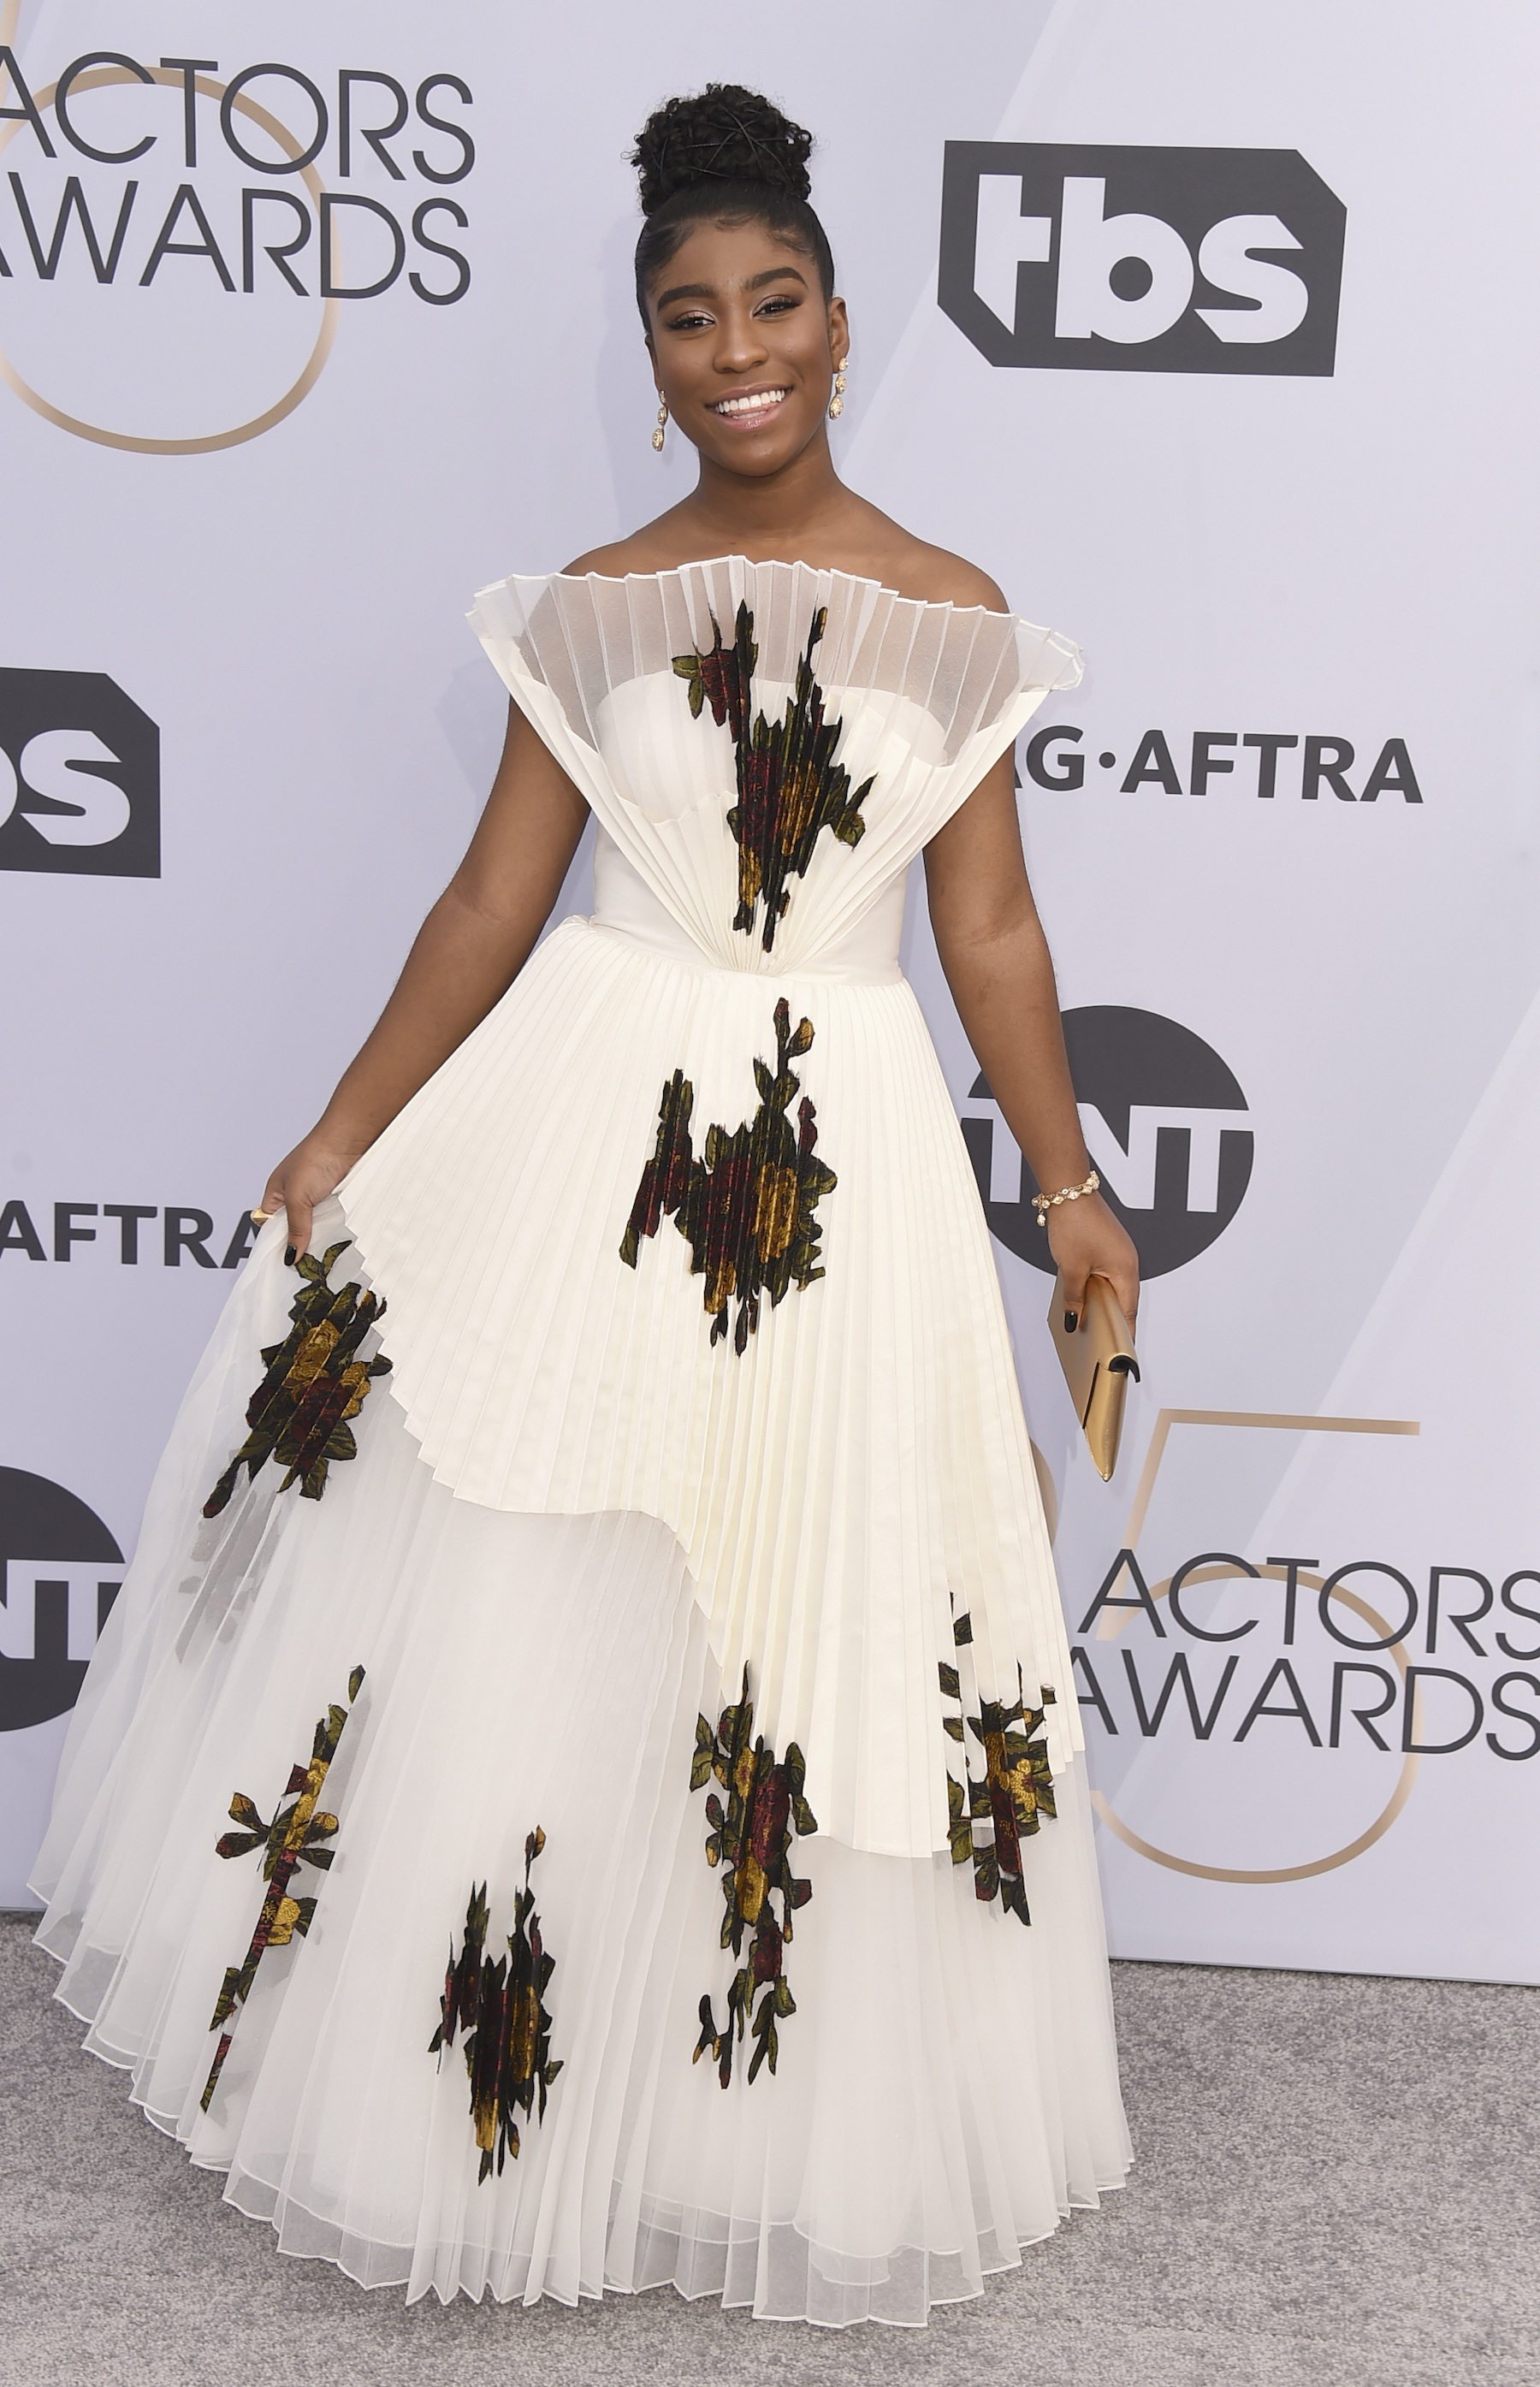 "<div class=""meta image-caption""><div class=""origin-logo origin-image ap""><span>AP</span></div><span class=""caption-text"">Lyric Ross arrives at the 25th annual Screen Actors Guild Awards at the Shrine Auditorium & Expo Hall on Sunday, Jan. 27, 2019, in Los Angeles. (Jordan Strauss/Invision/AP)</span></div>"